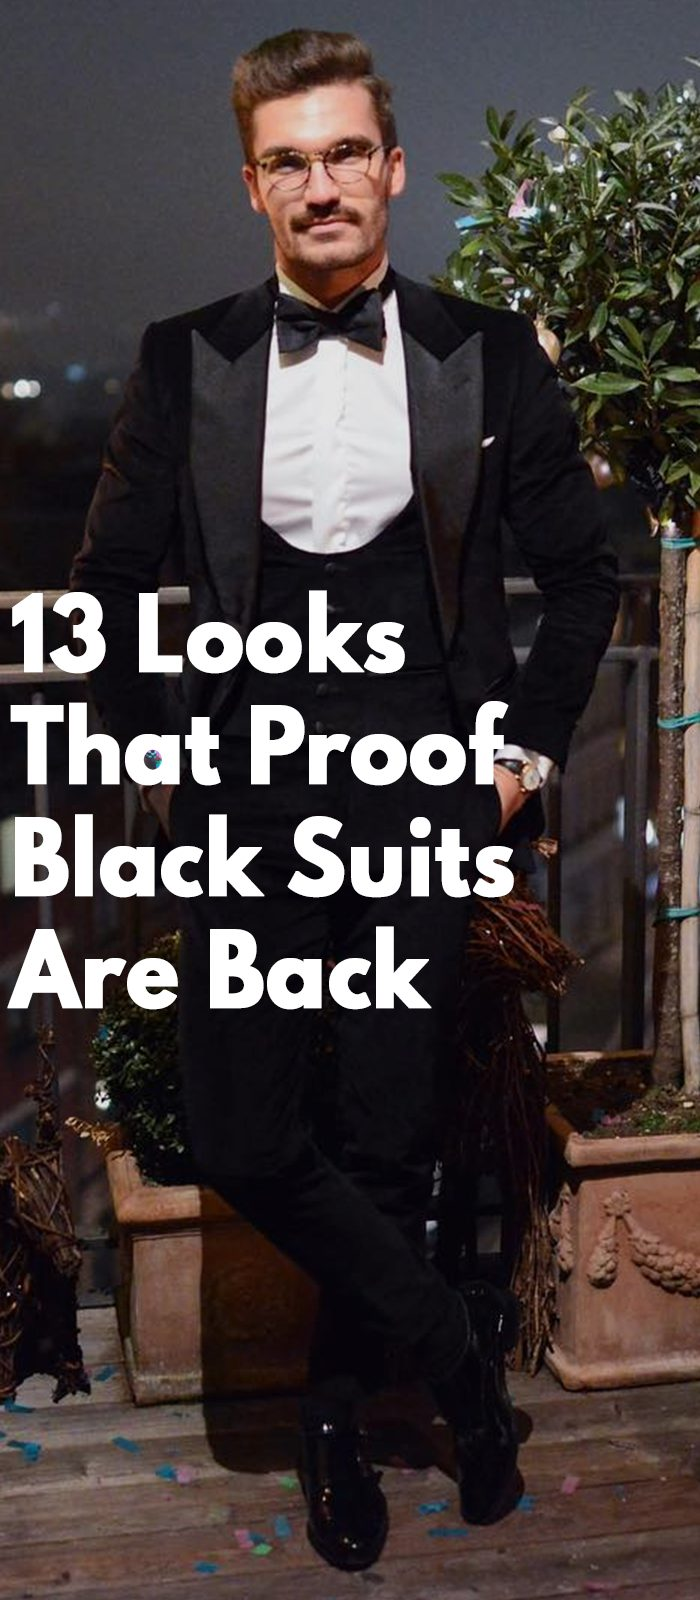 13 Looks That Proof Black Suits Are Back